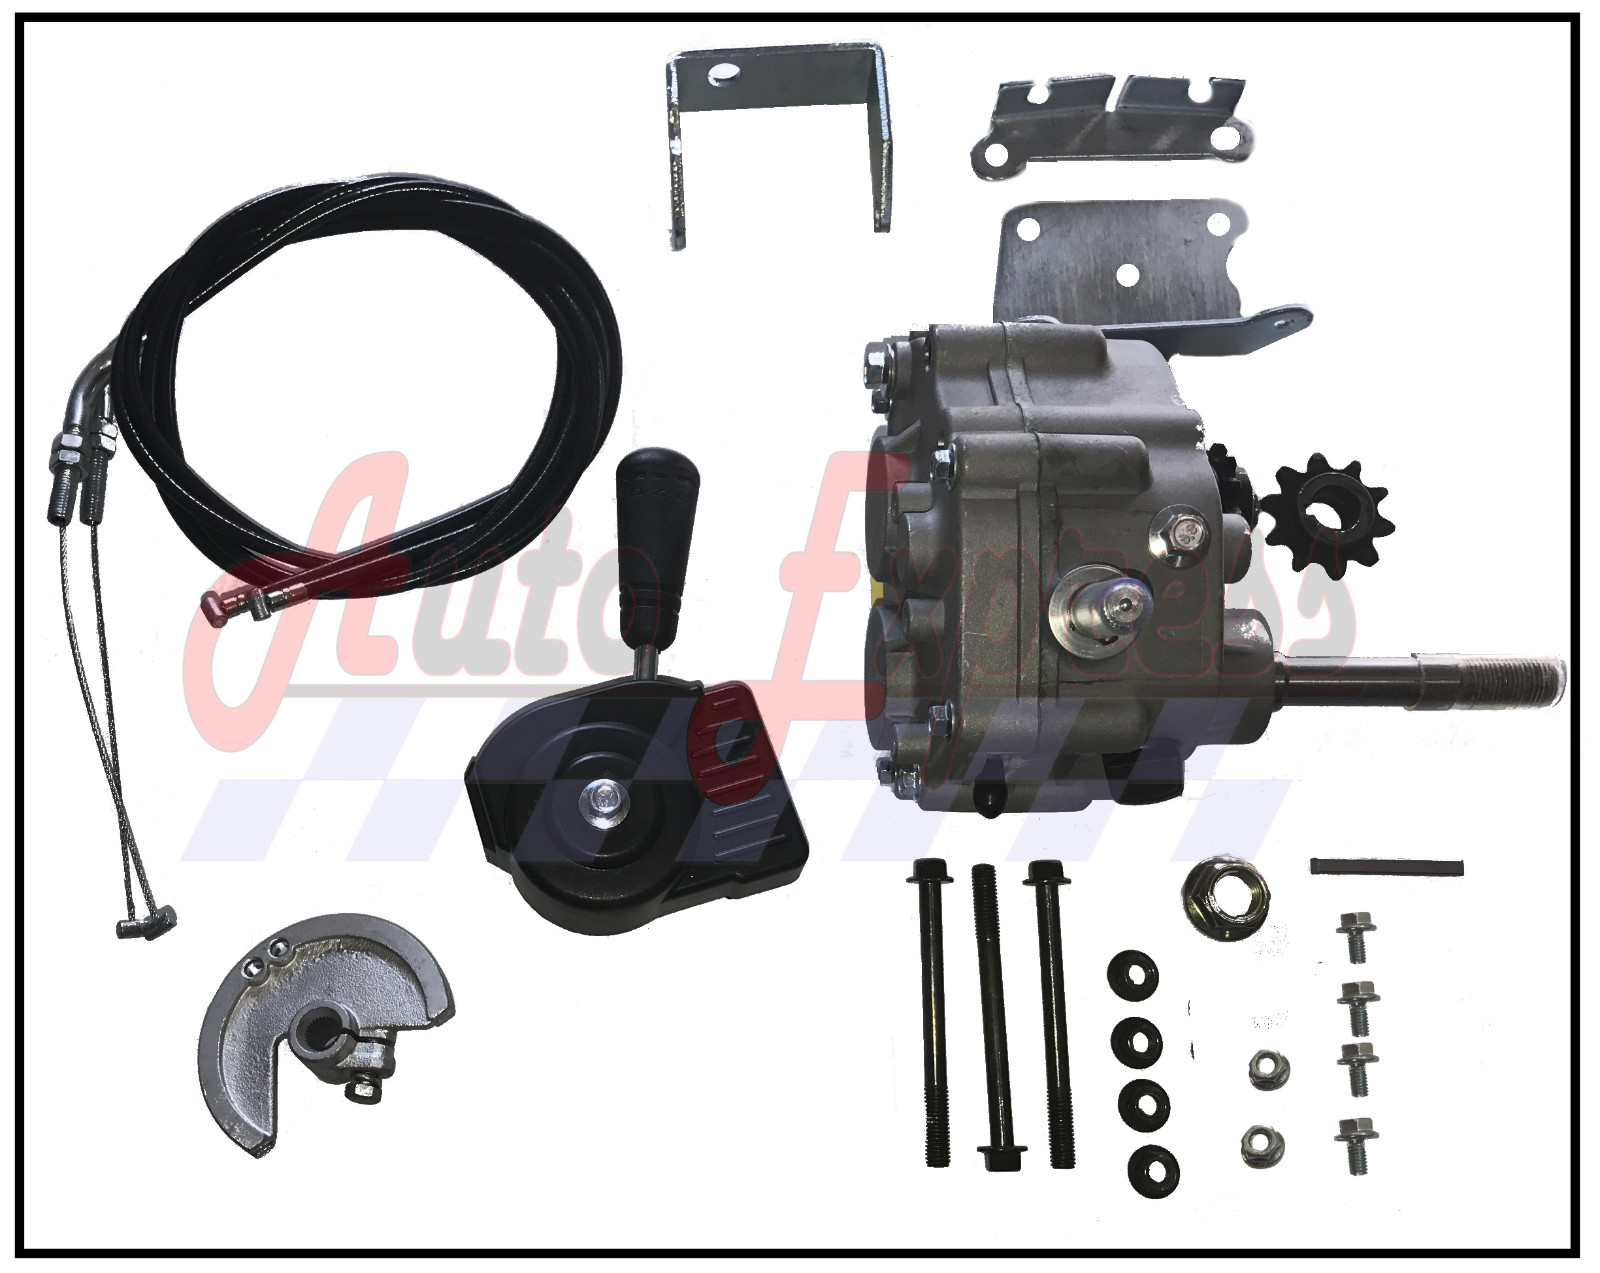 Forward Reverse Transmission : Go kart forward reverse gear box fit quot comet tav